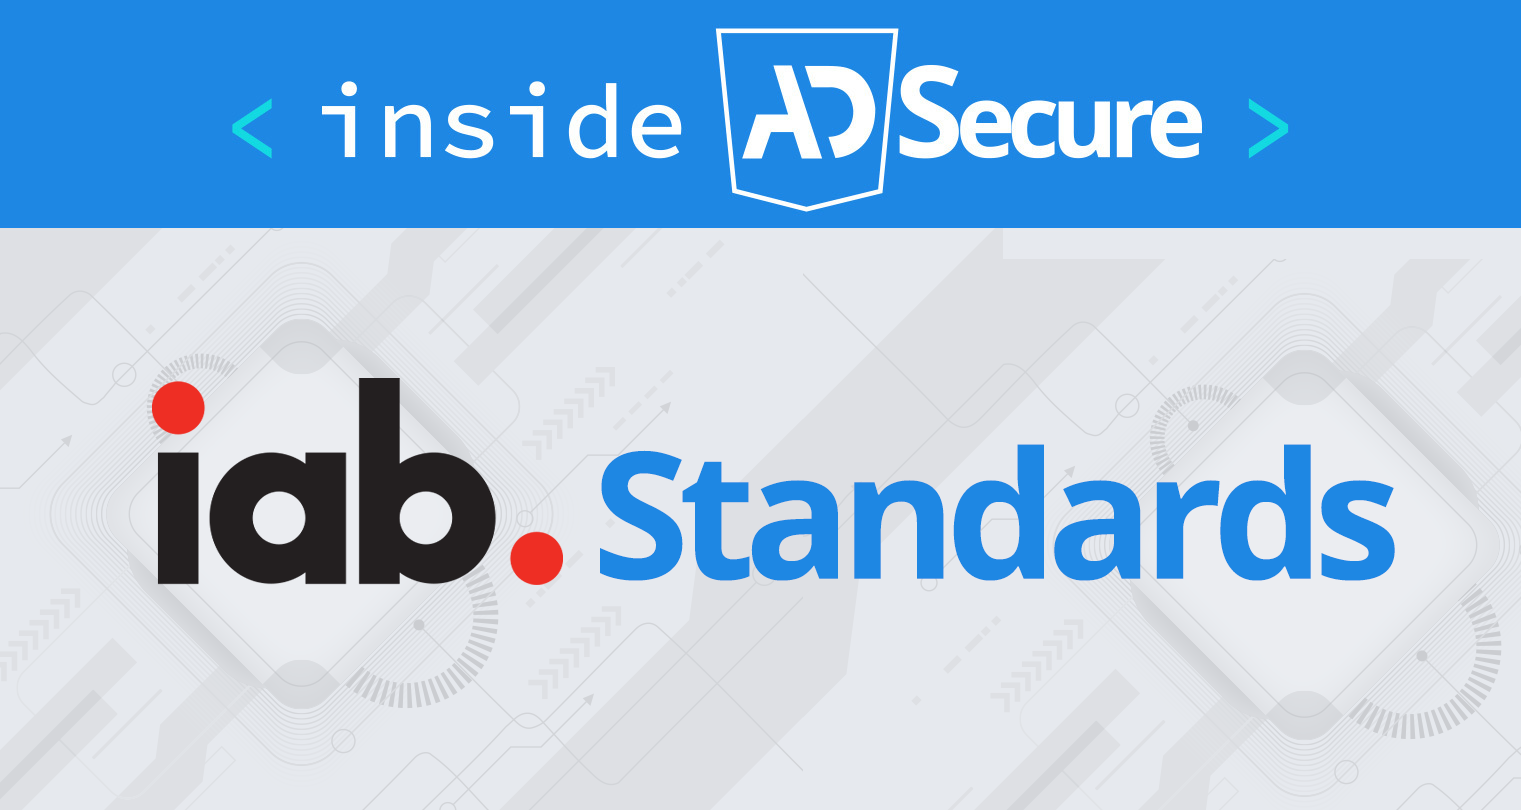 AdSecure IAB Standards